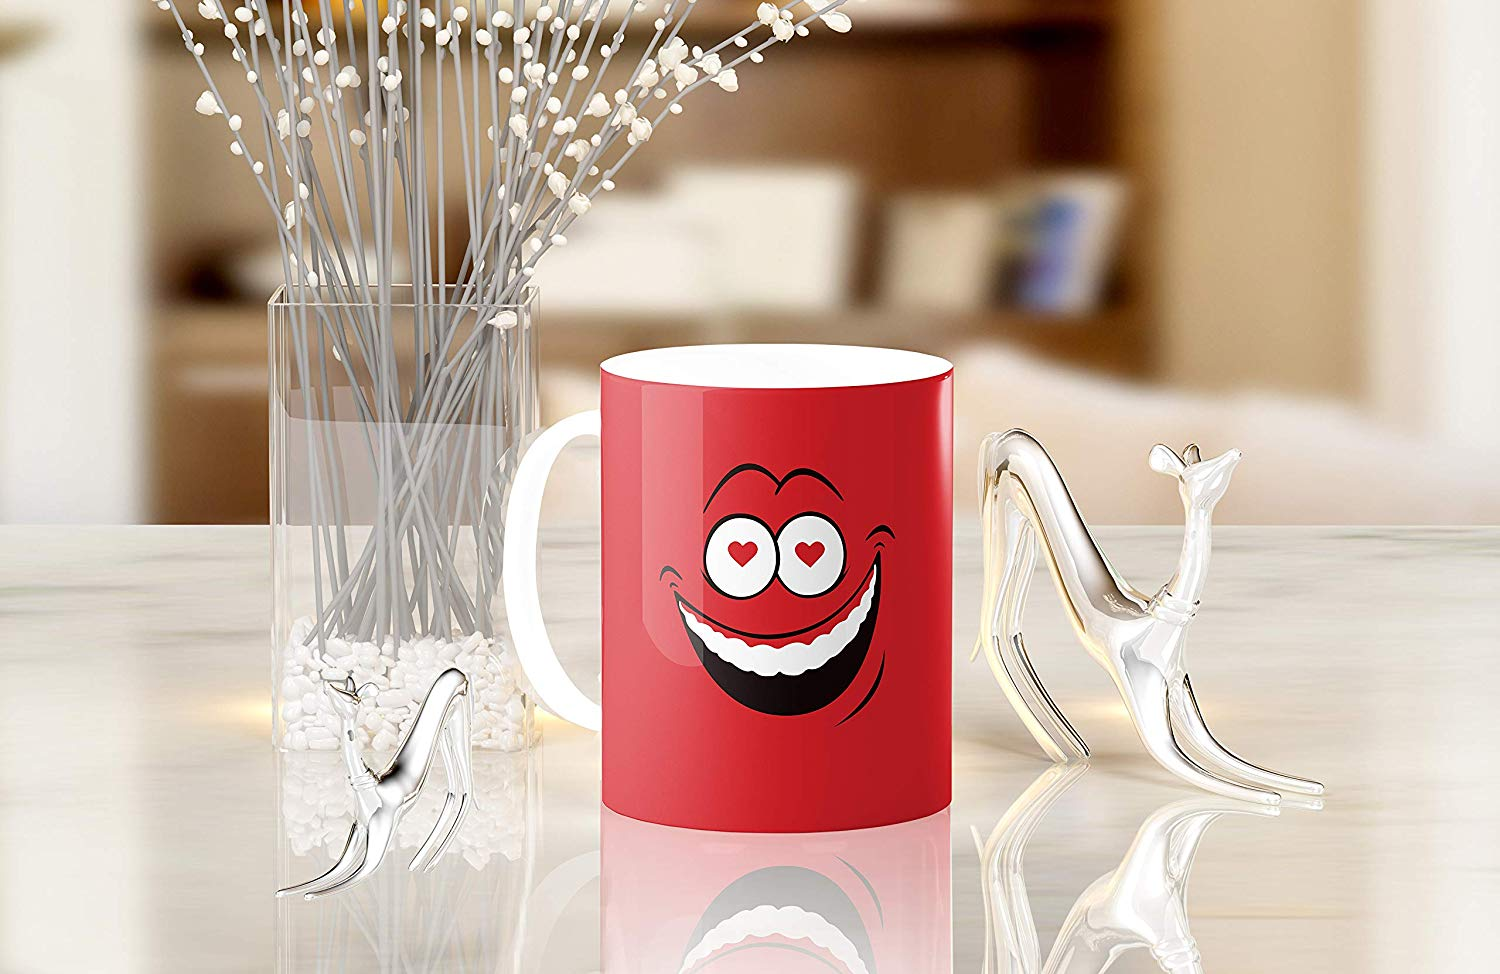 Heat Sensitive Color Changing Coffee Mug Funny Coffee Cup Red Loved Funny Face Design Funny Gift Idea B079FRF6YM 9